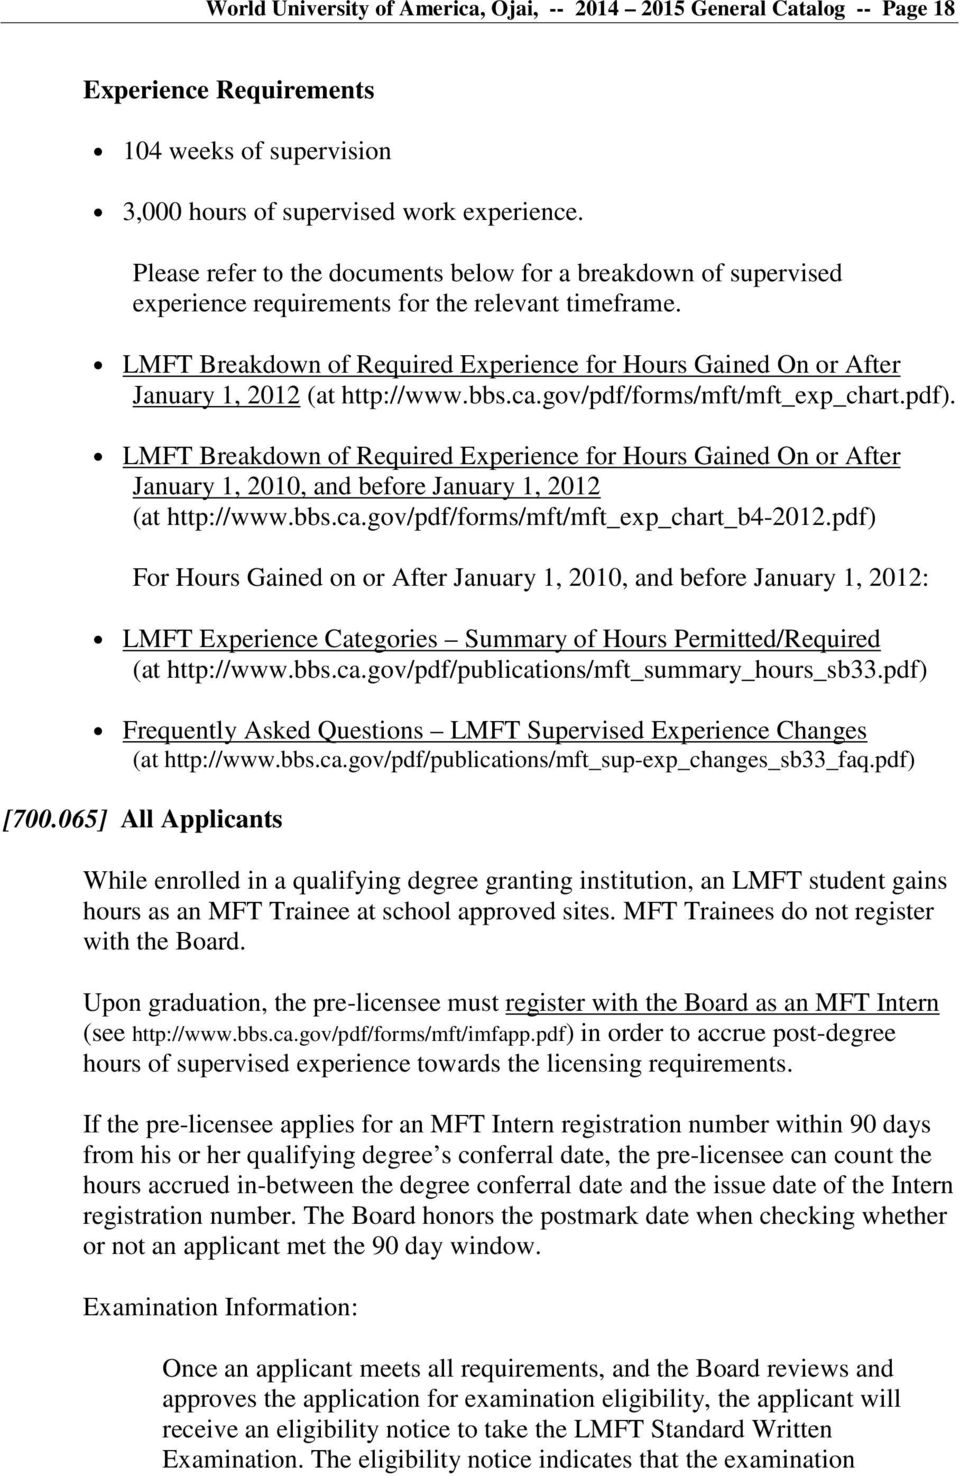 LMFT Breakdown of Required Experience for Hours Gained On or After January 1, 2012 (at http://www.bbs.ca.gov/pdf/forms/mft/mft_exp_chart.pdf).